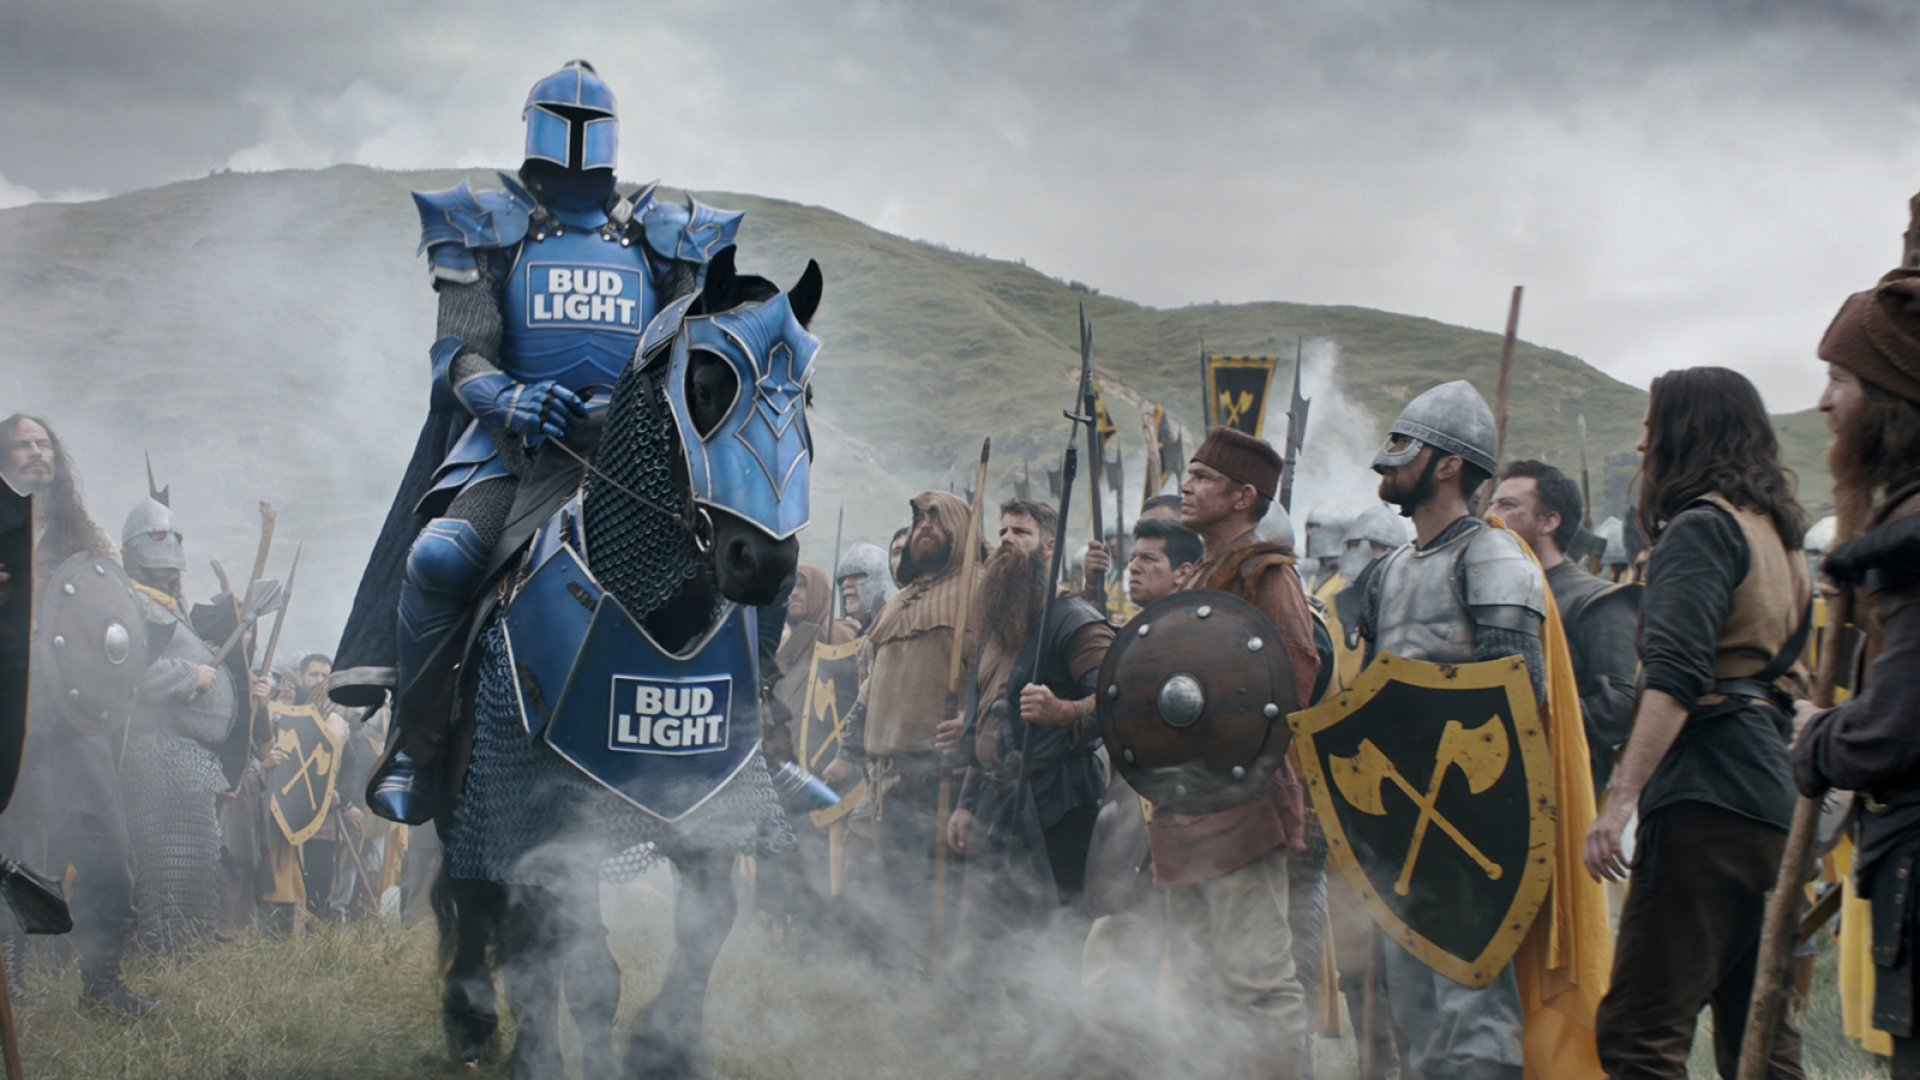 'Dilly Dilly': A Marketing Expert Analyzes the Highly Successful Bud Light Ad Campaign